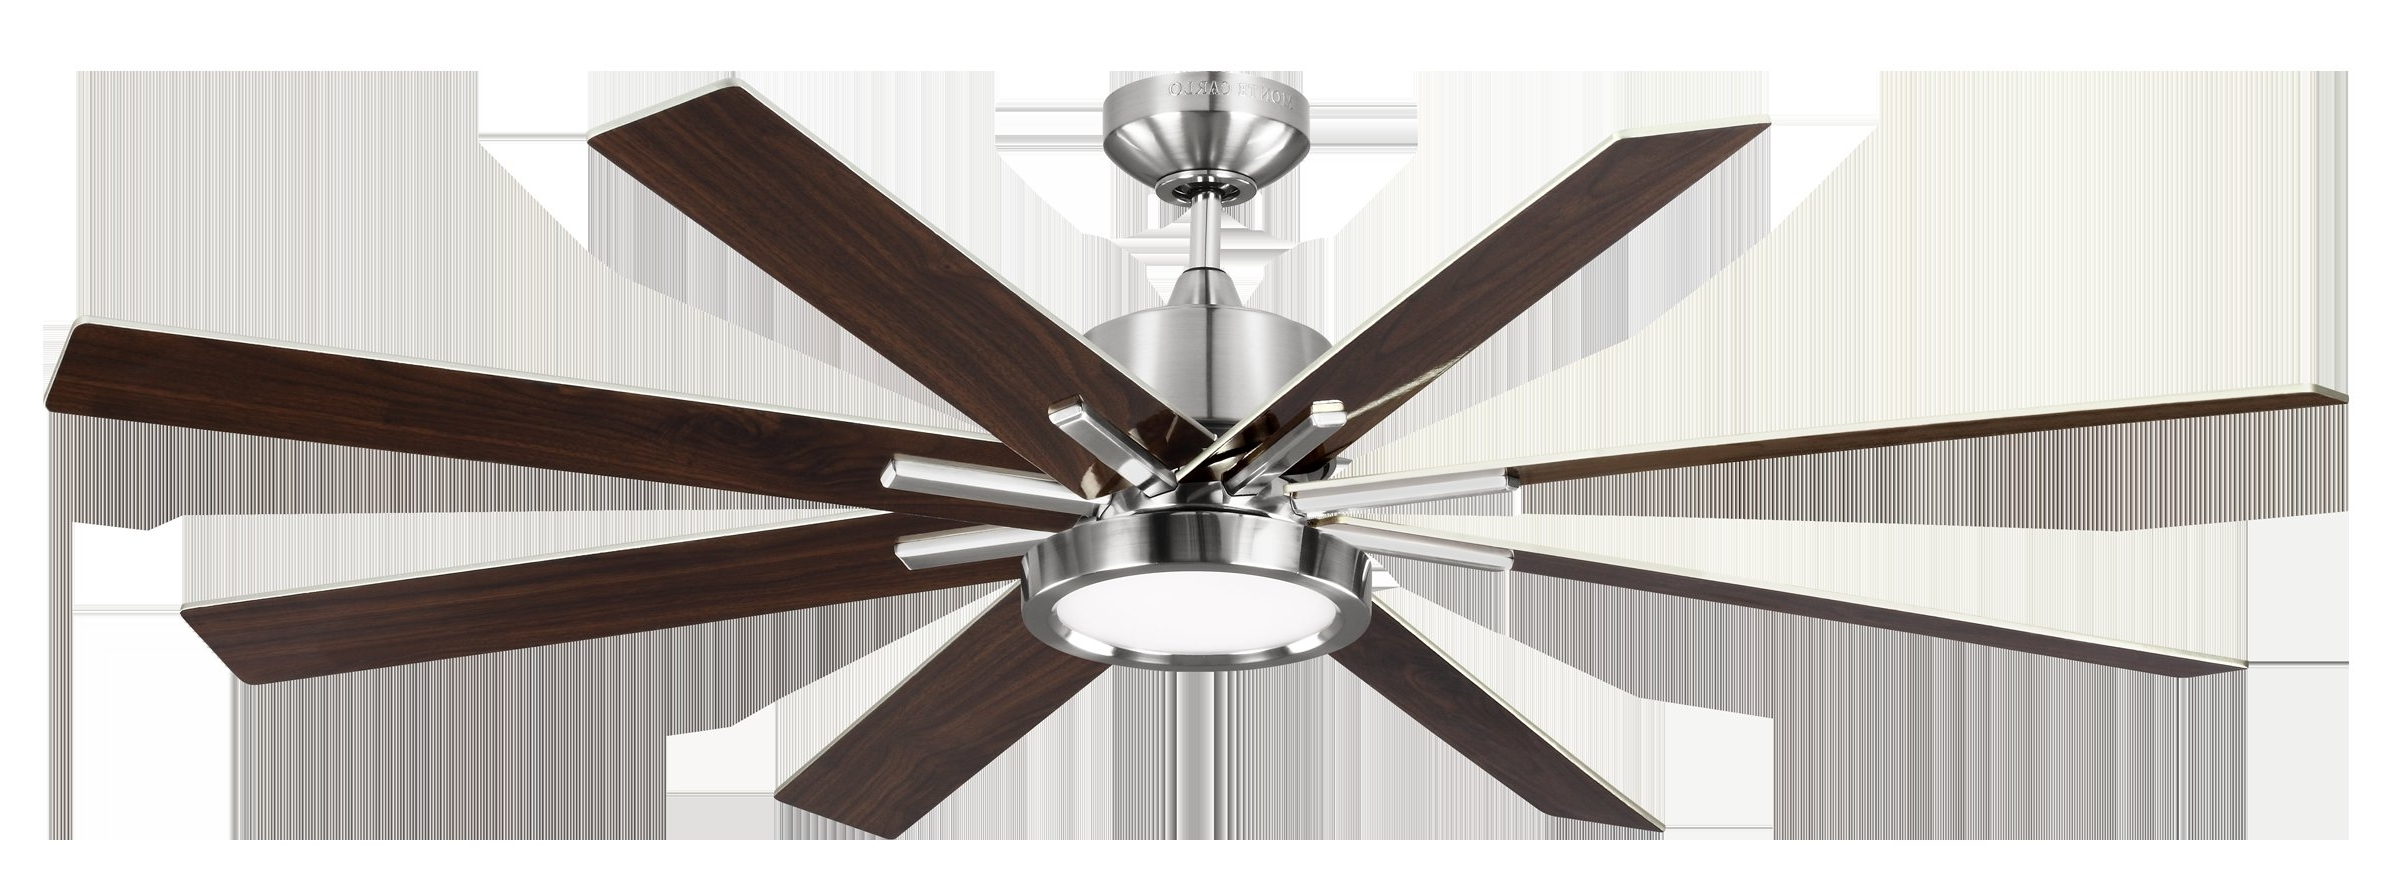 "Popular Outdoor Ceiling Fans With Remote With Regard To Wade Logan 60"" Woodlynne 8 Blade Outdoor Ceiling Fan With Remote (View 8 of 20)"